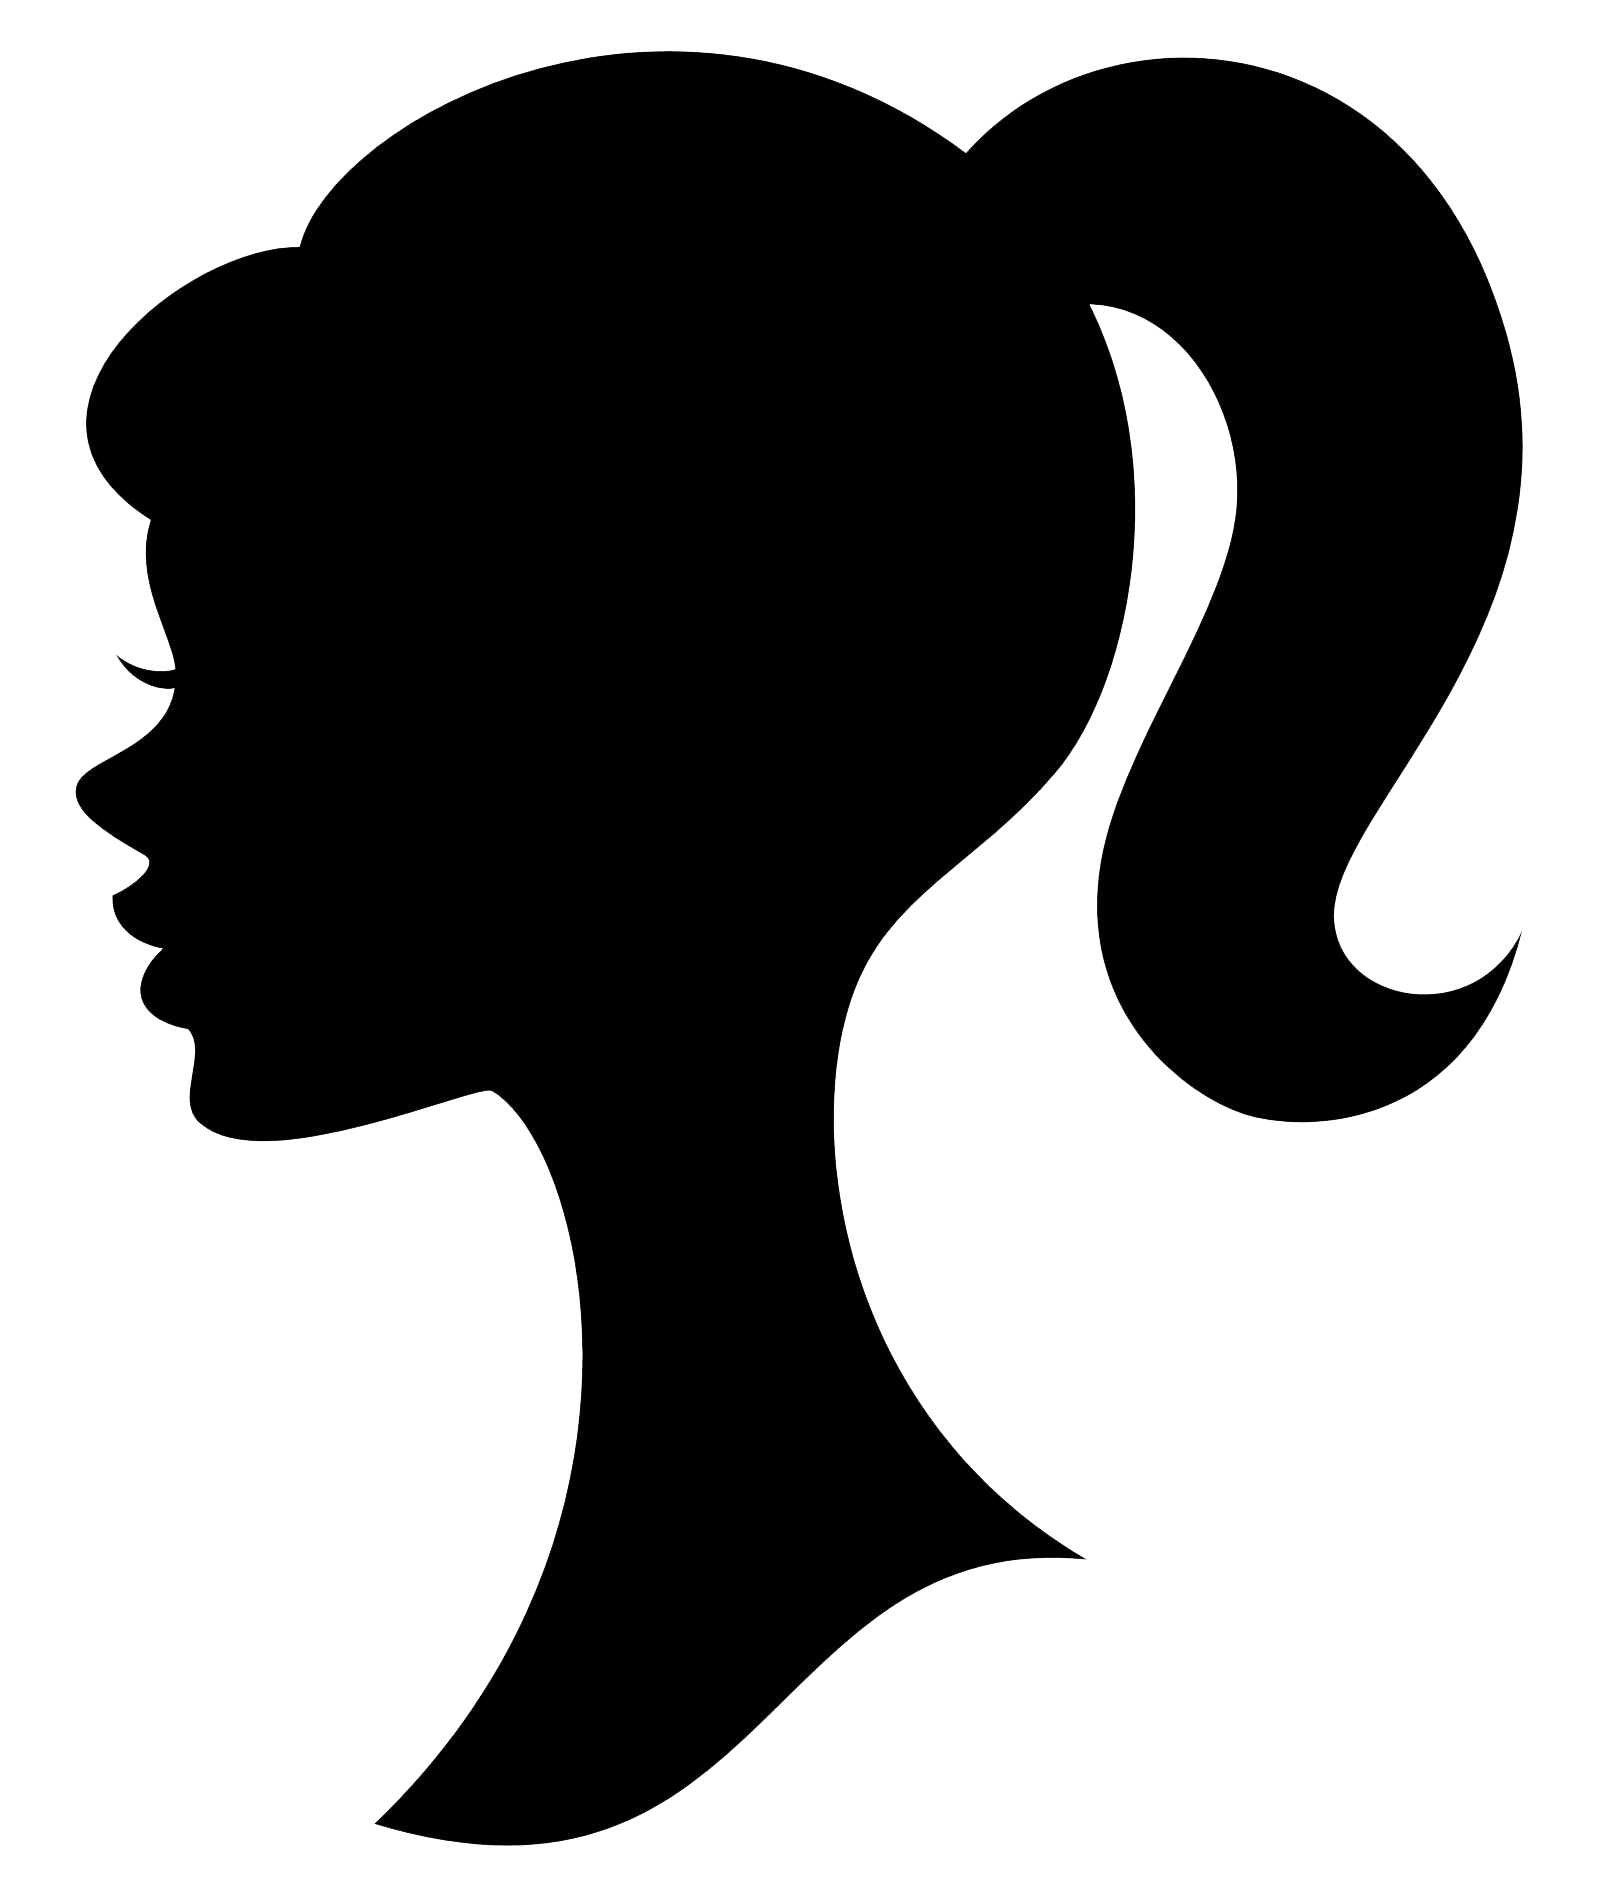 birthday cake silhouette png